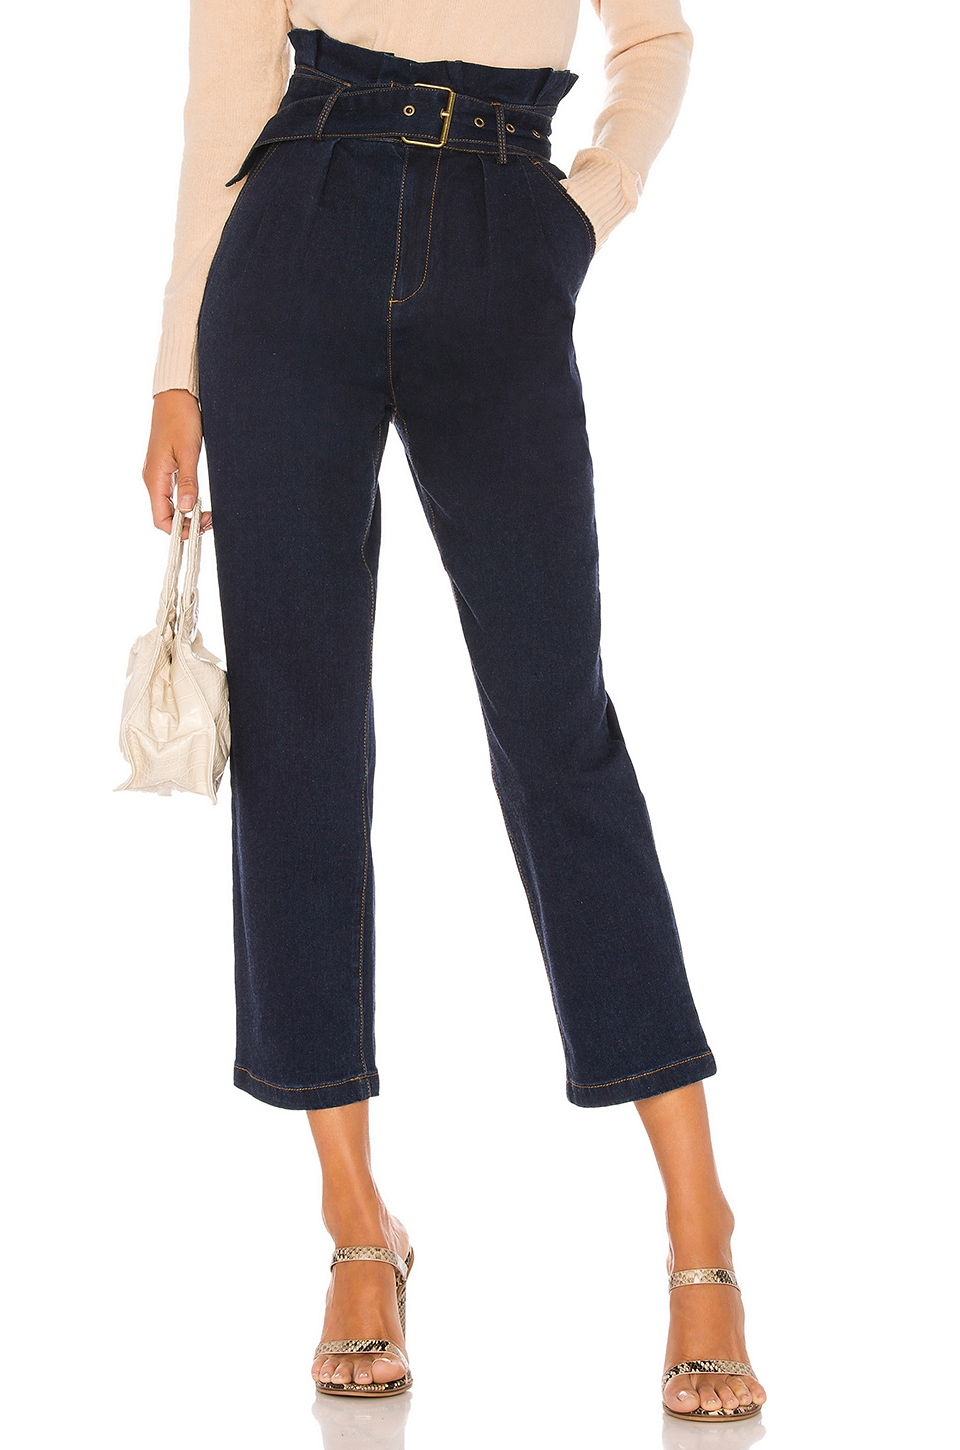 Lovers + Friends Henley Pant in Dark Denim